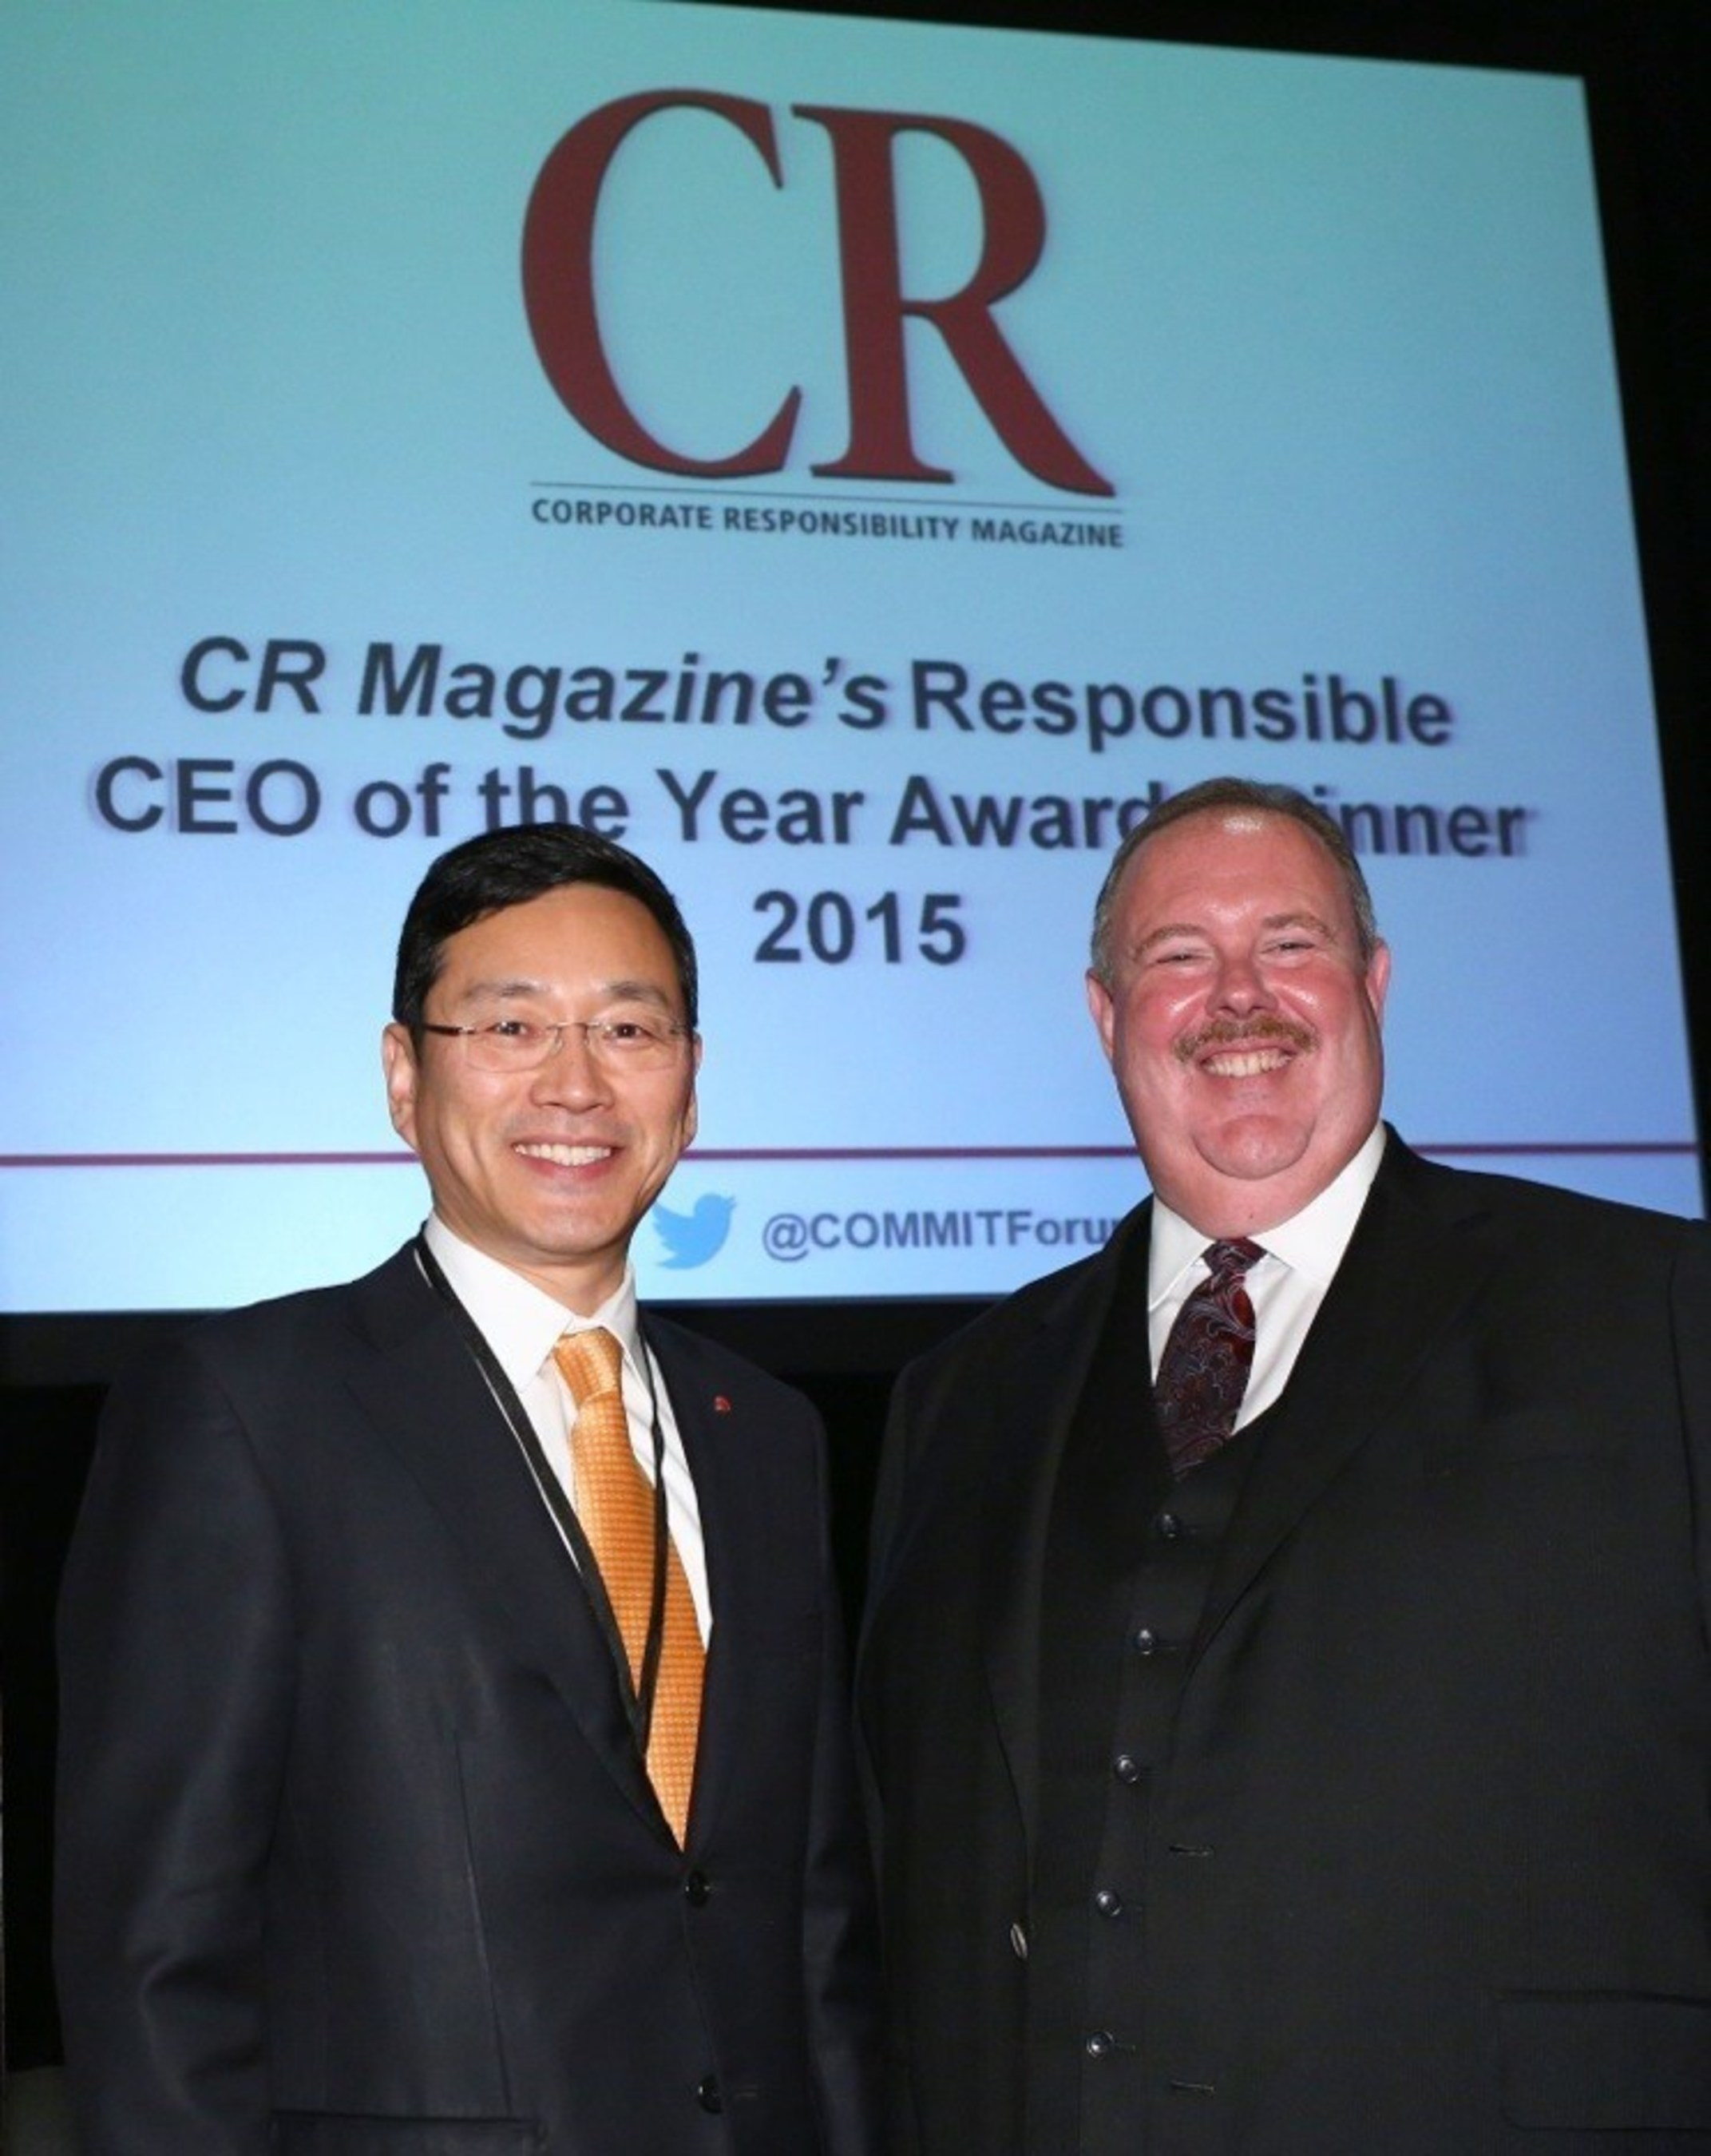 LG Electronics Honored For Environmental Sustainability Corporate Responsibility Leadership